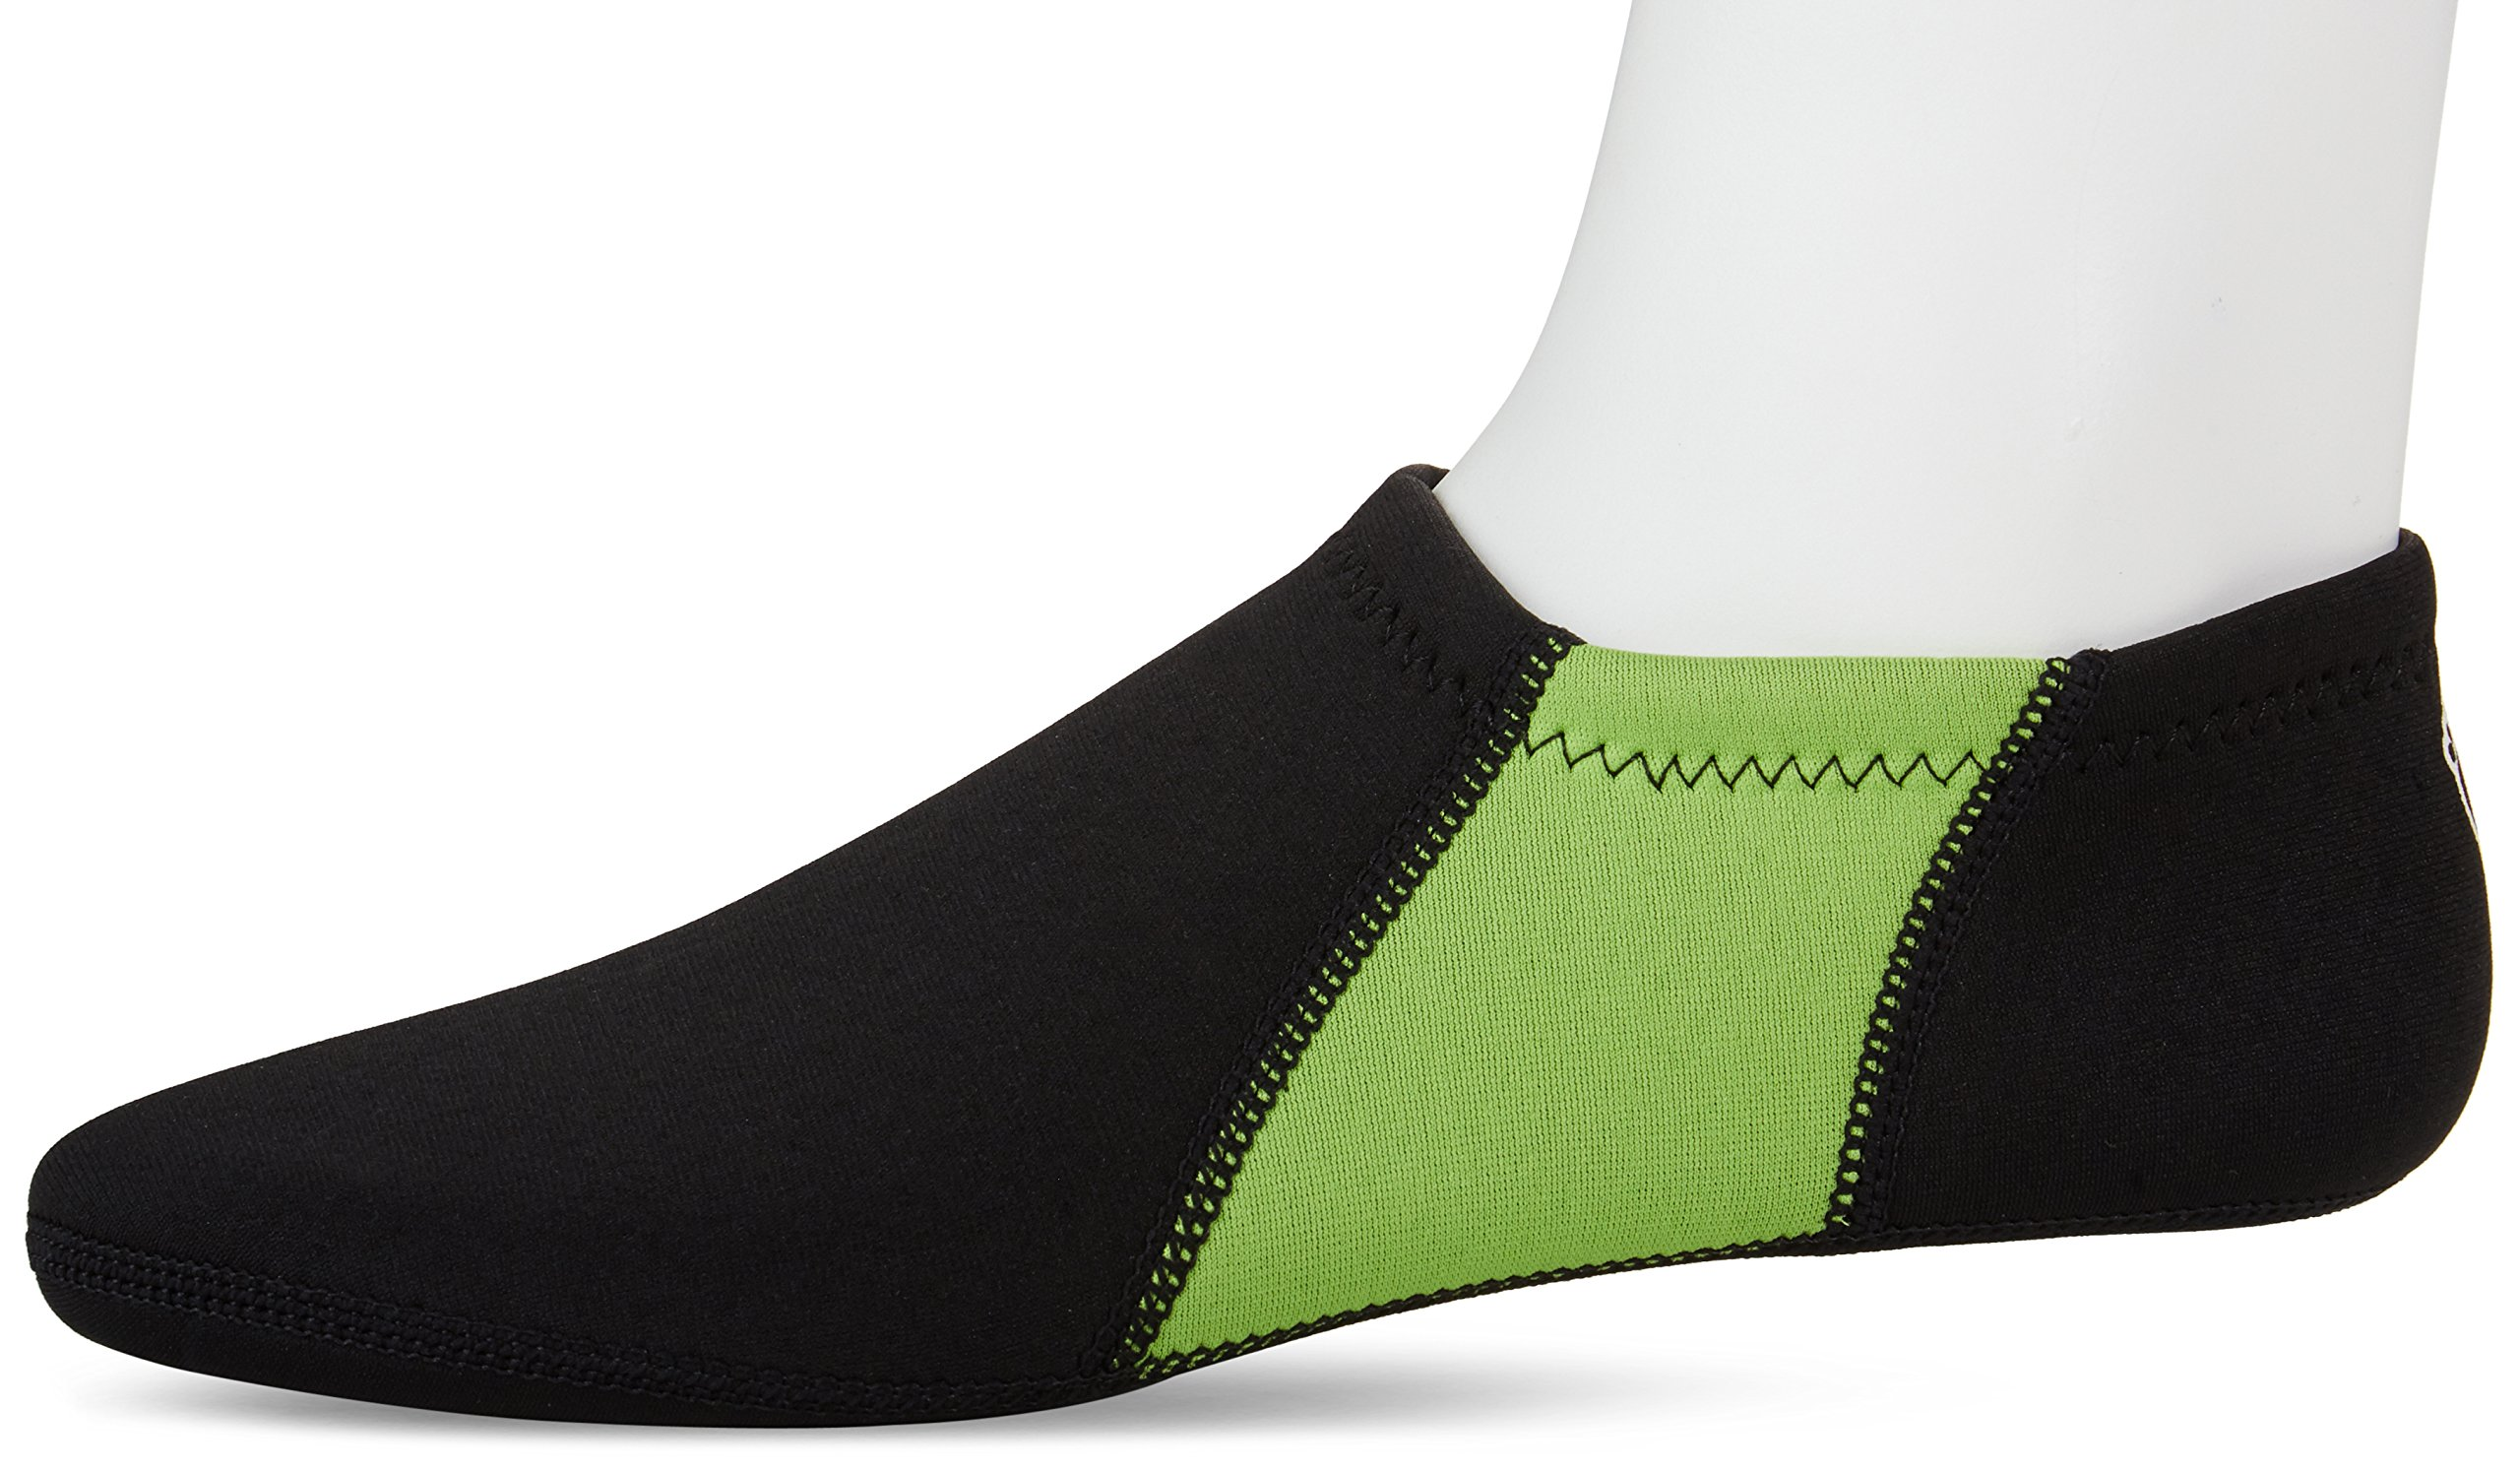 NuFoot Booties Men's Shoes, Best Foldable & Flexible Footwear, Fold and Go Travel Shoes, Yoga Socks, Indoor Shoes, Slippers, Black with Green Stripes, Large by Nufoot (Image #1)